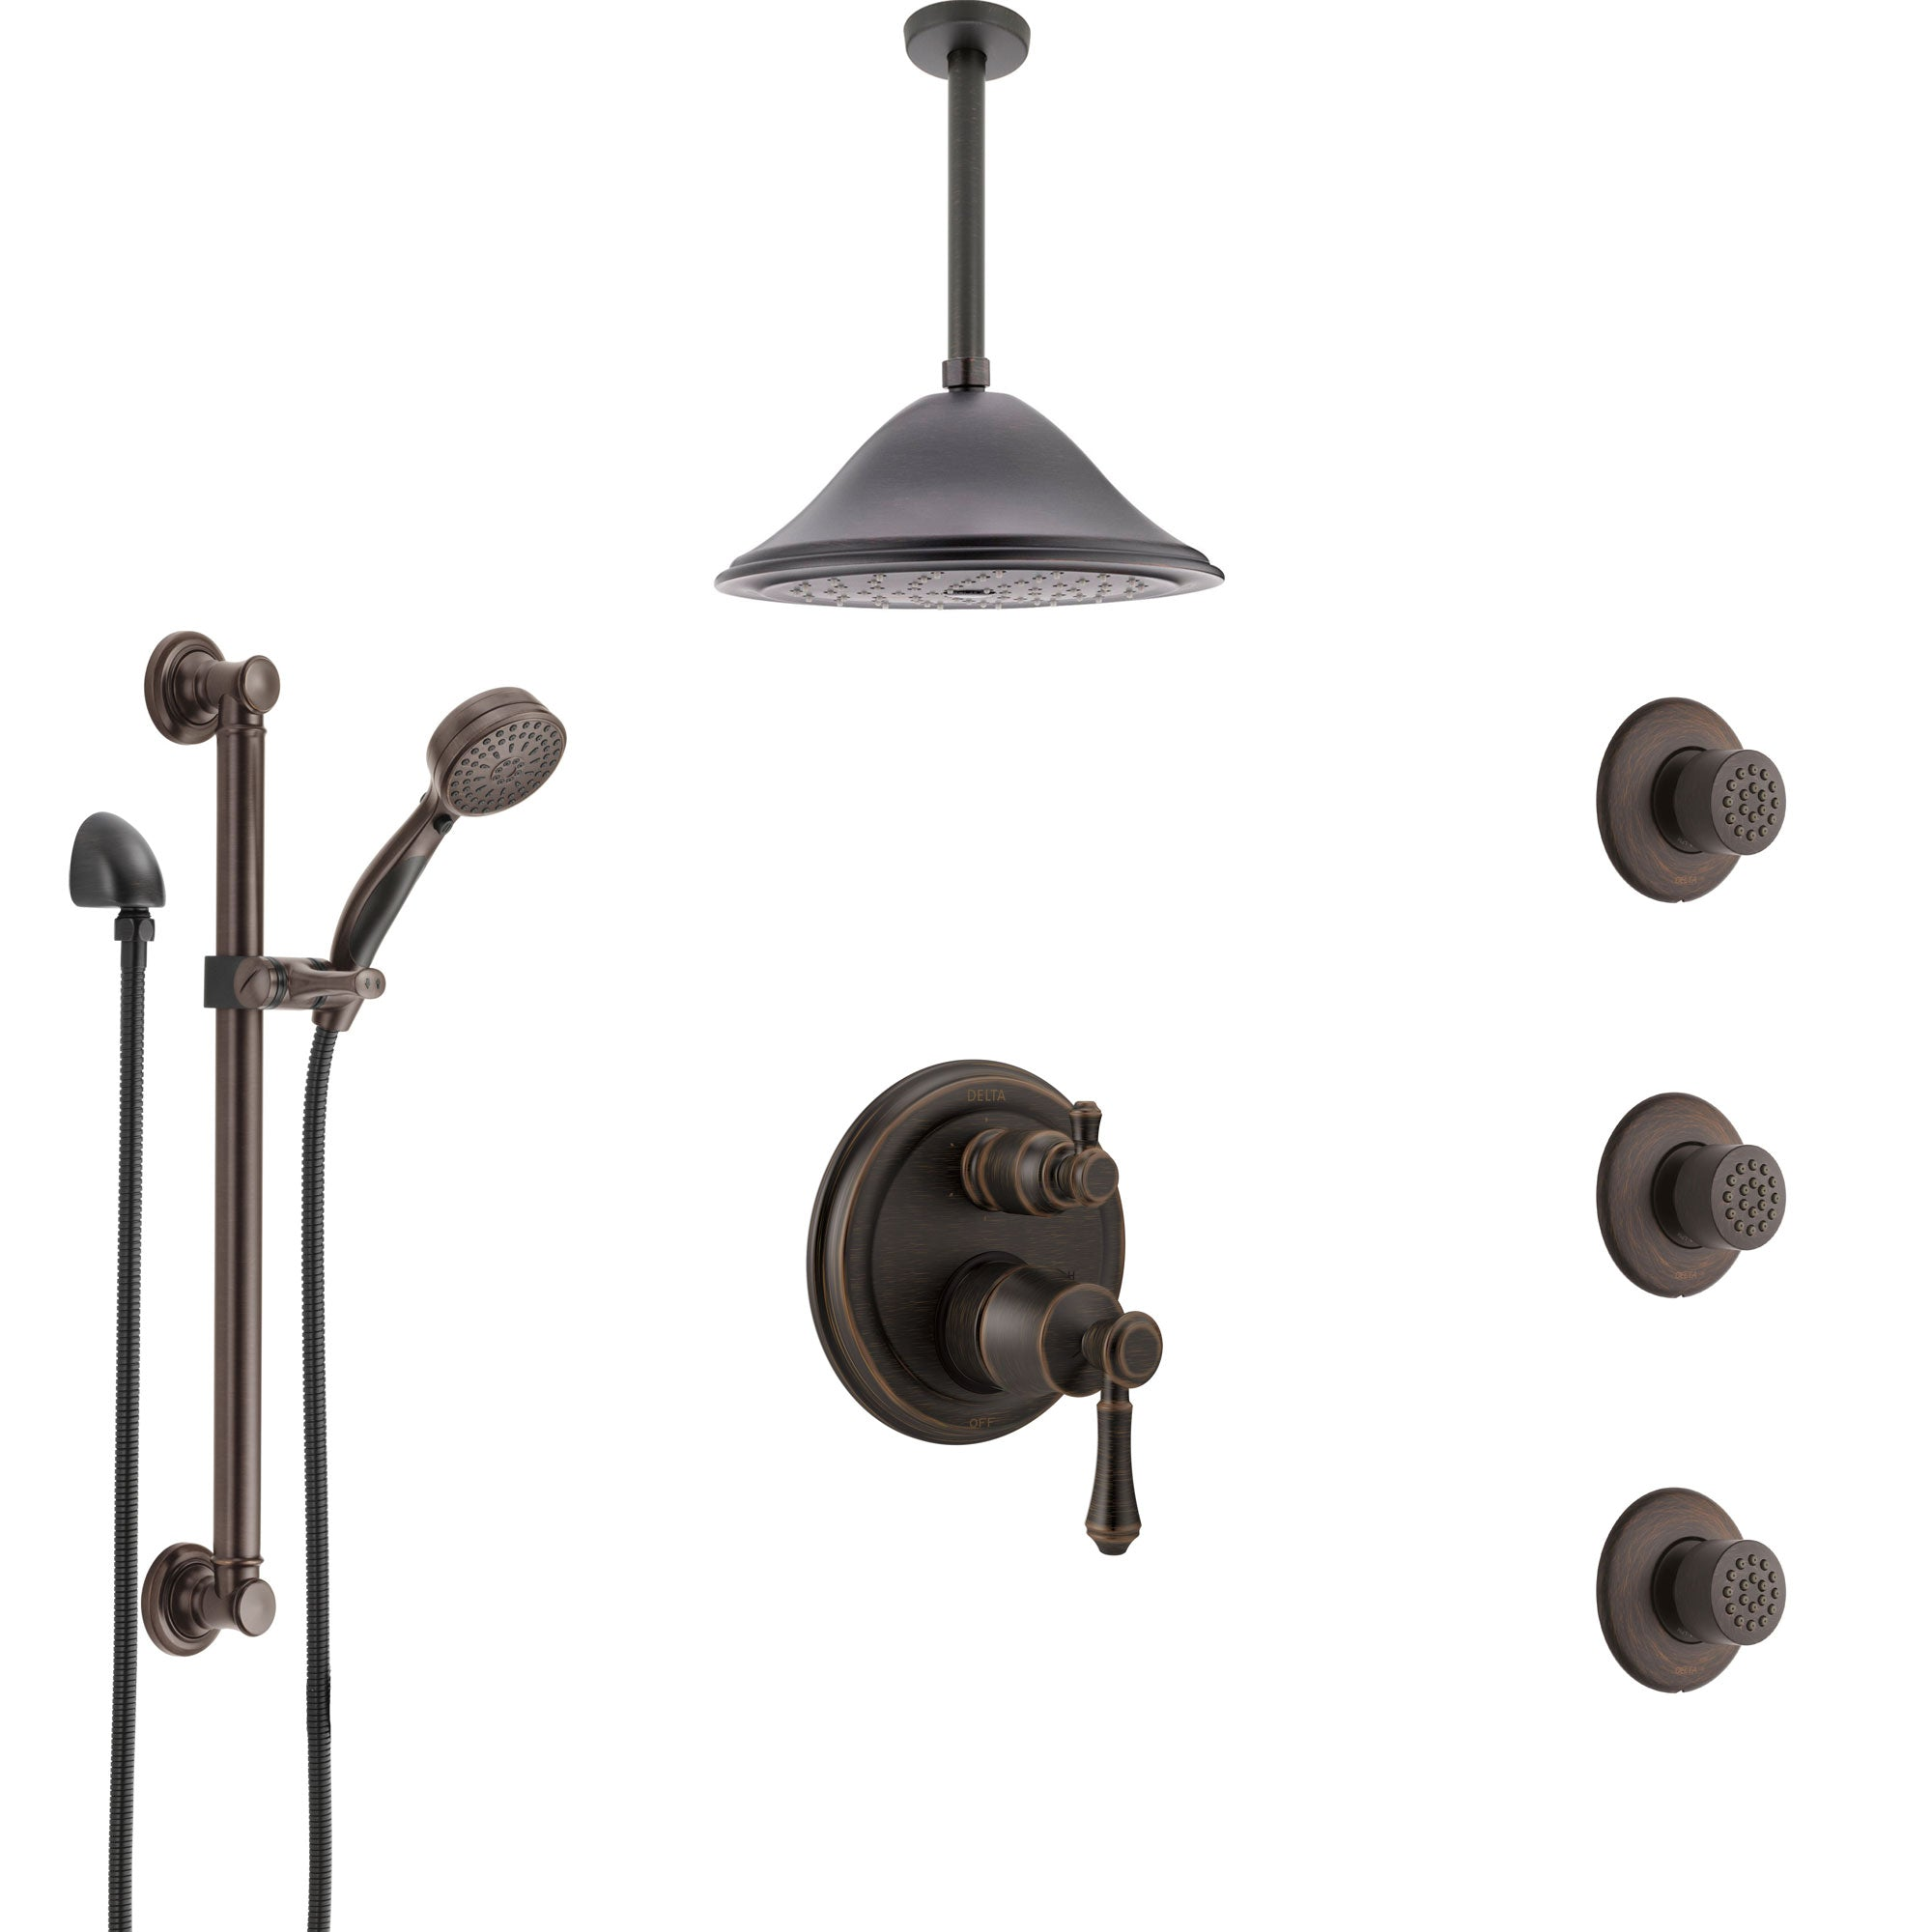 Delta Cassidy Venetian Bronze Integrated Diverter Shower System Control Handle, Ceiling Showerhead, 3 Body Sprays, and Grab Bar Hand Shower SS24997RB8